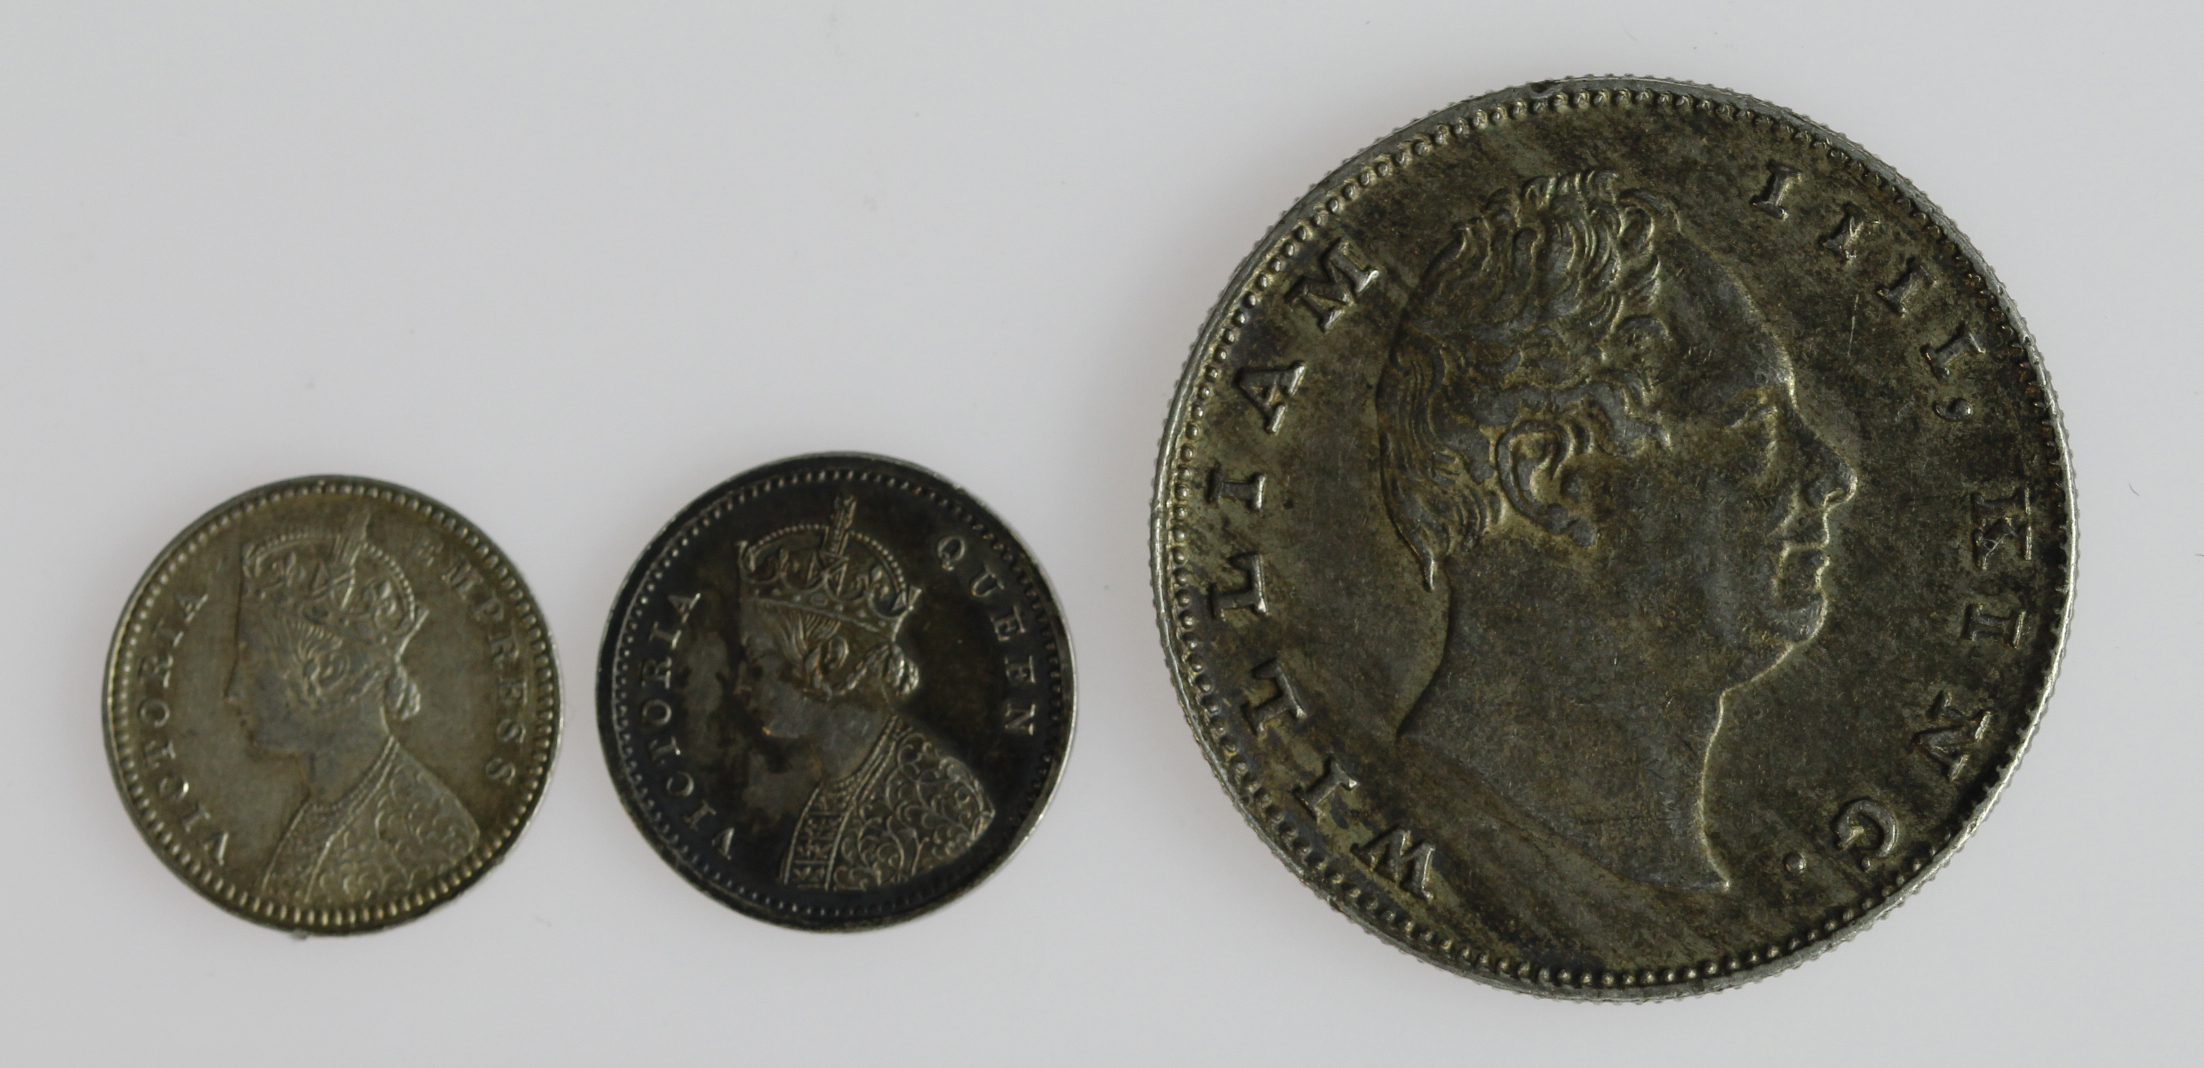 India (3): William IV EIC Rupee 1835 no initials on truncation, toned GVF, along with 2x Queen